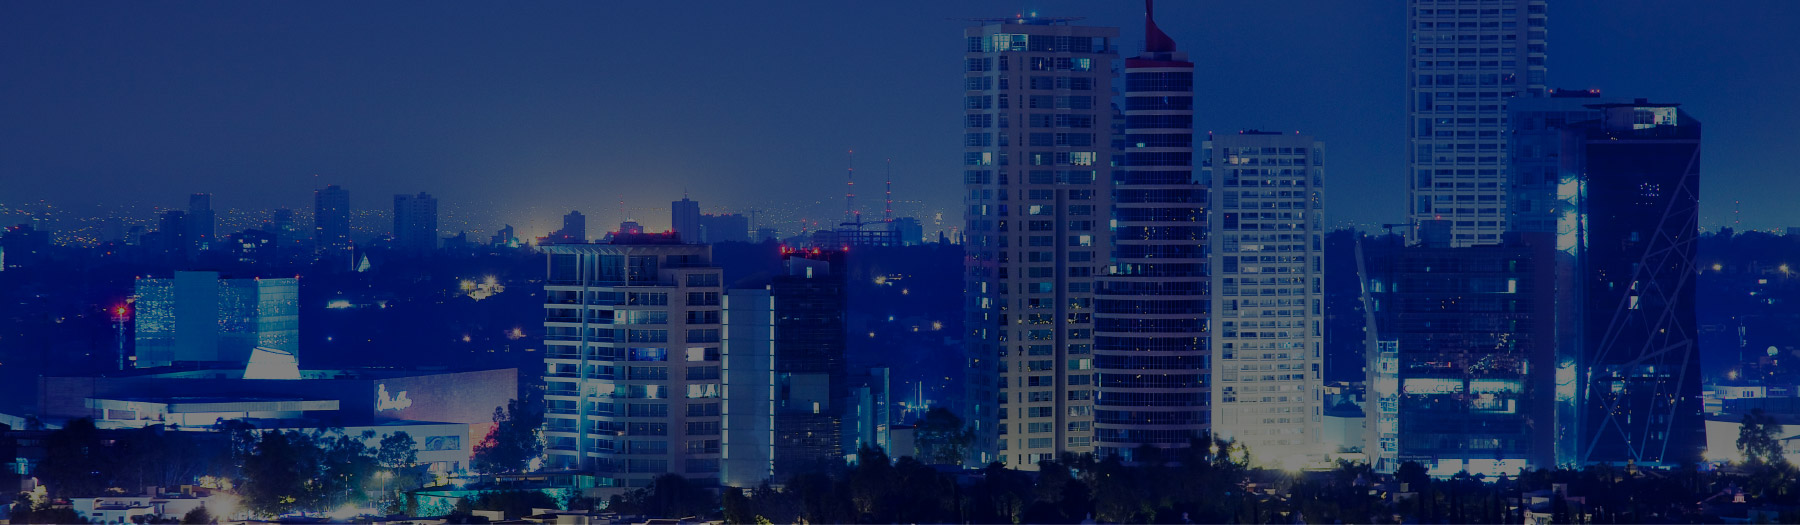 A scenic night-time view of a skyline in Mexico City